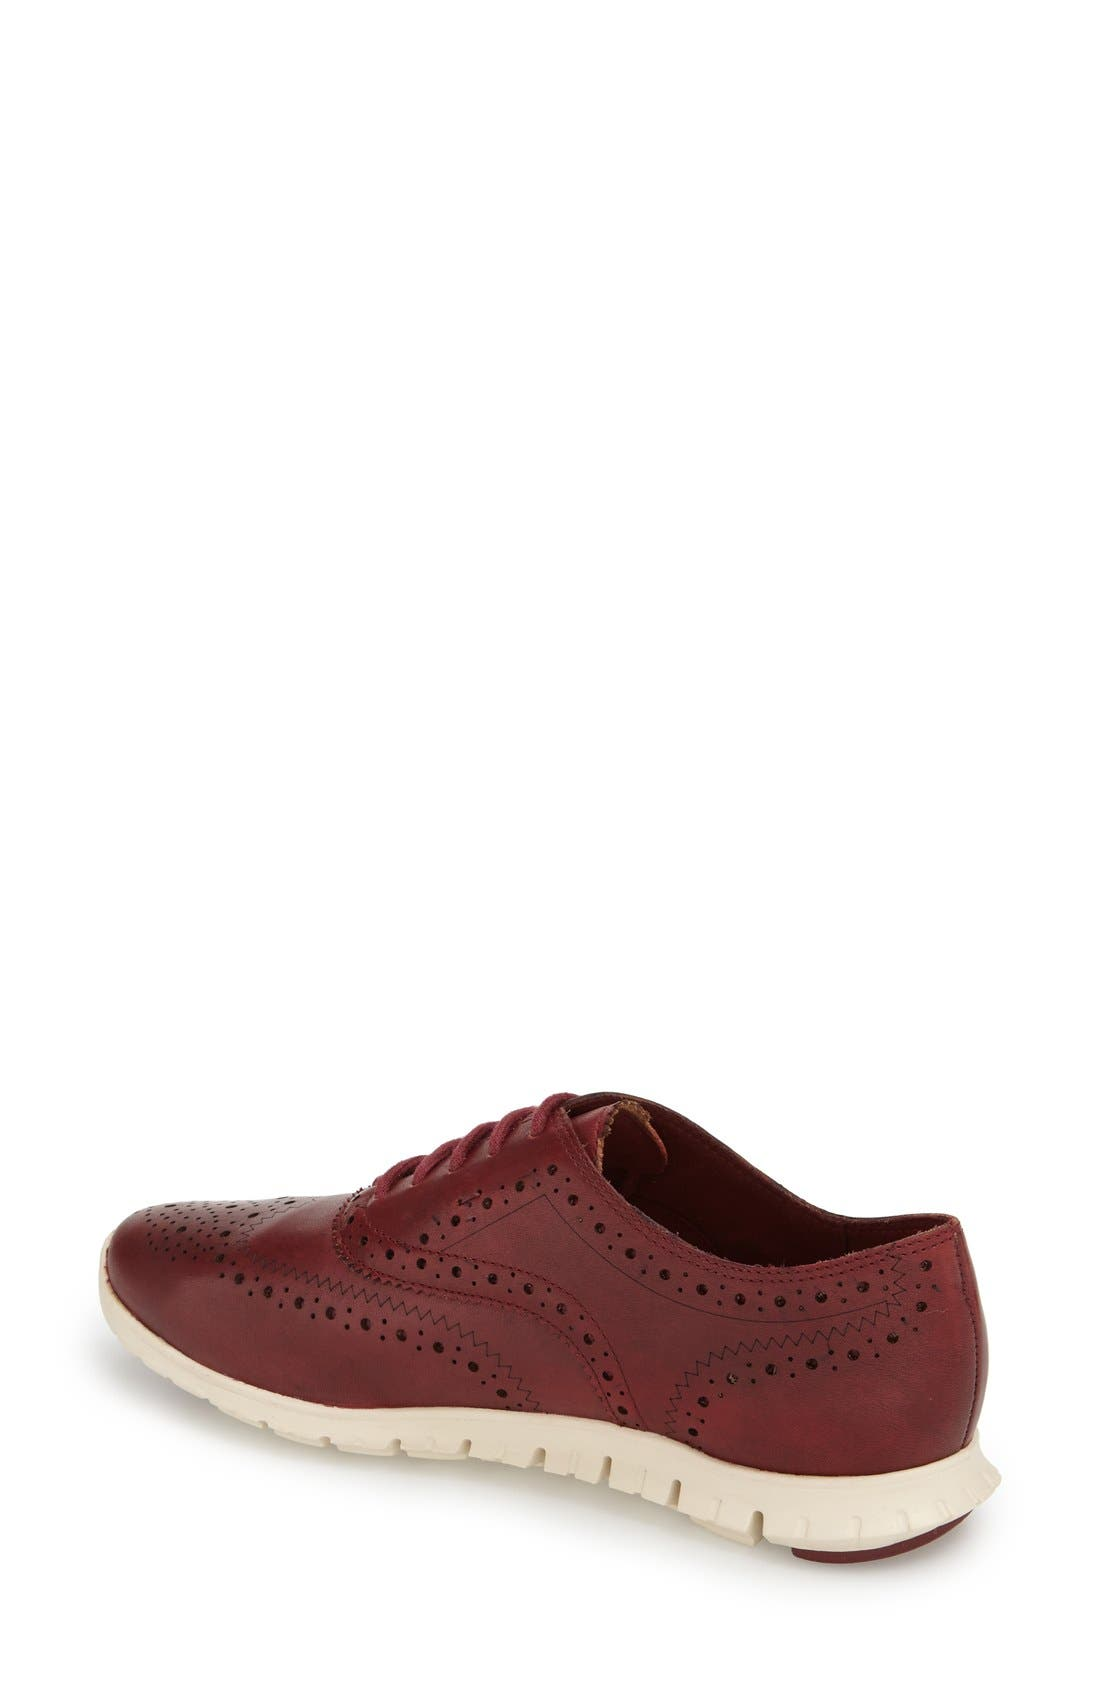 'ZeroGrand' Perforated Wingtip,                             Alternate thumbnail 55, color,